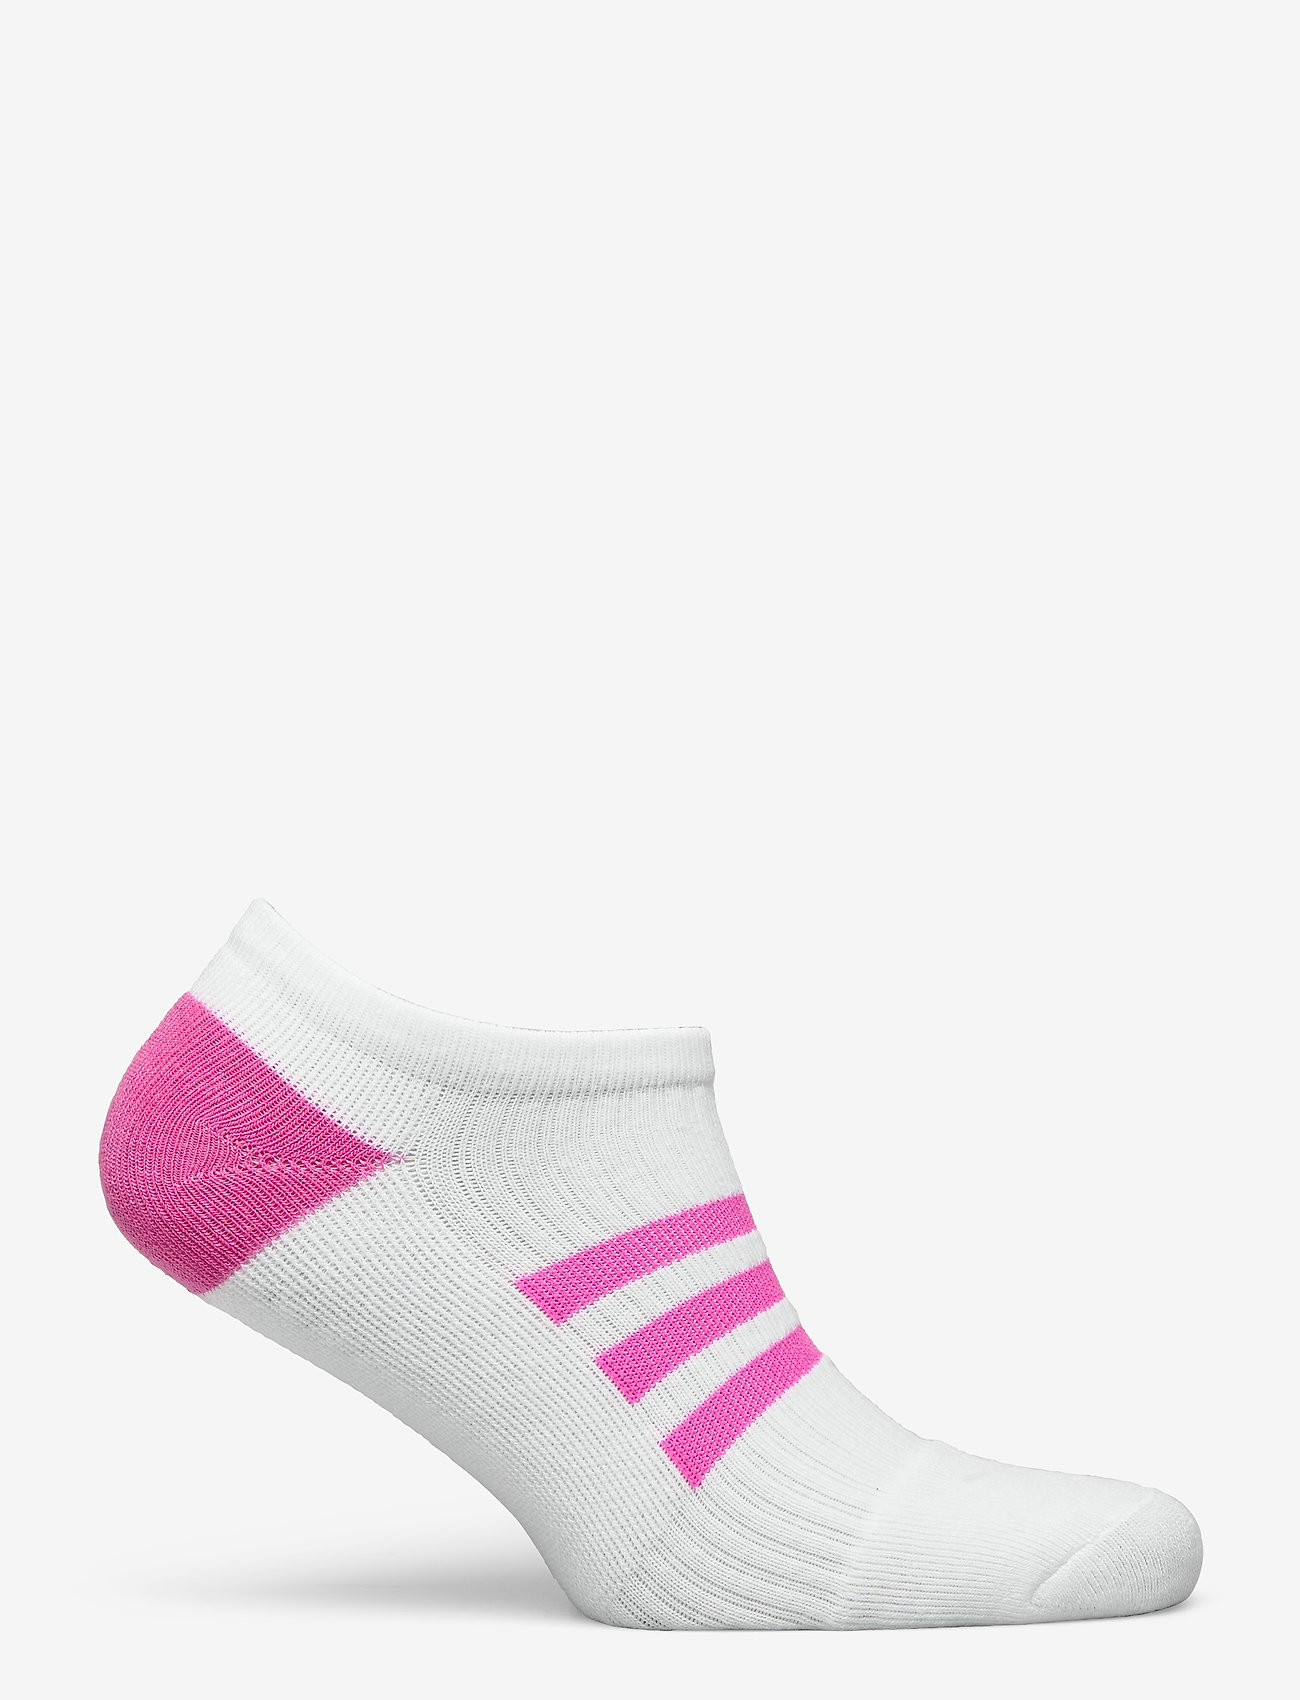 adidas Golf - COMFORT LOW SK - ankle socks - white/scrpnk - 1